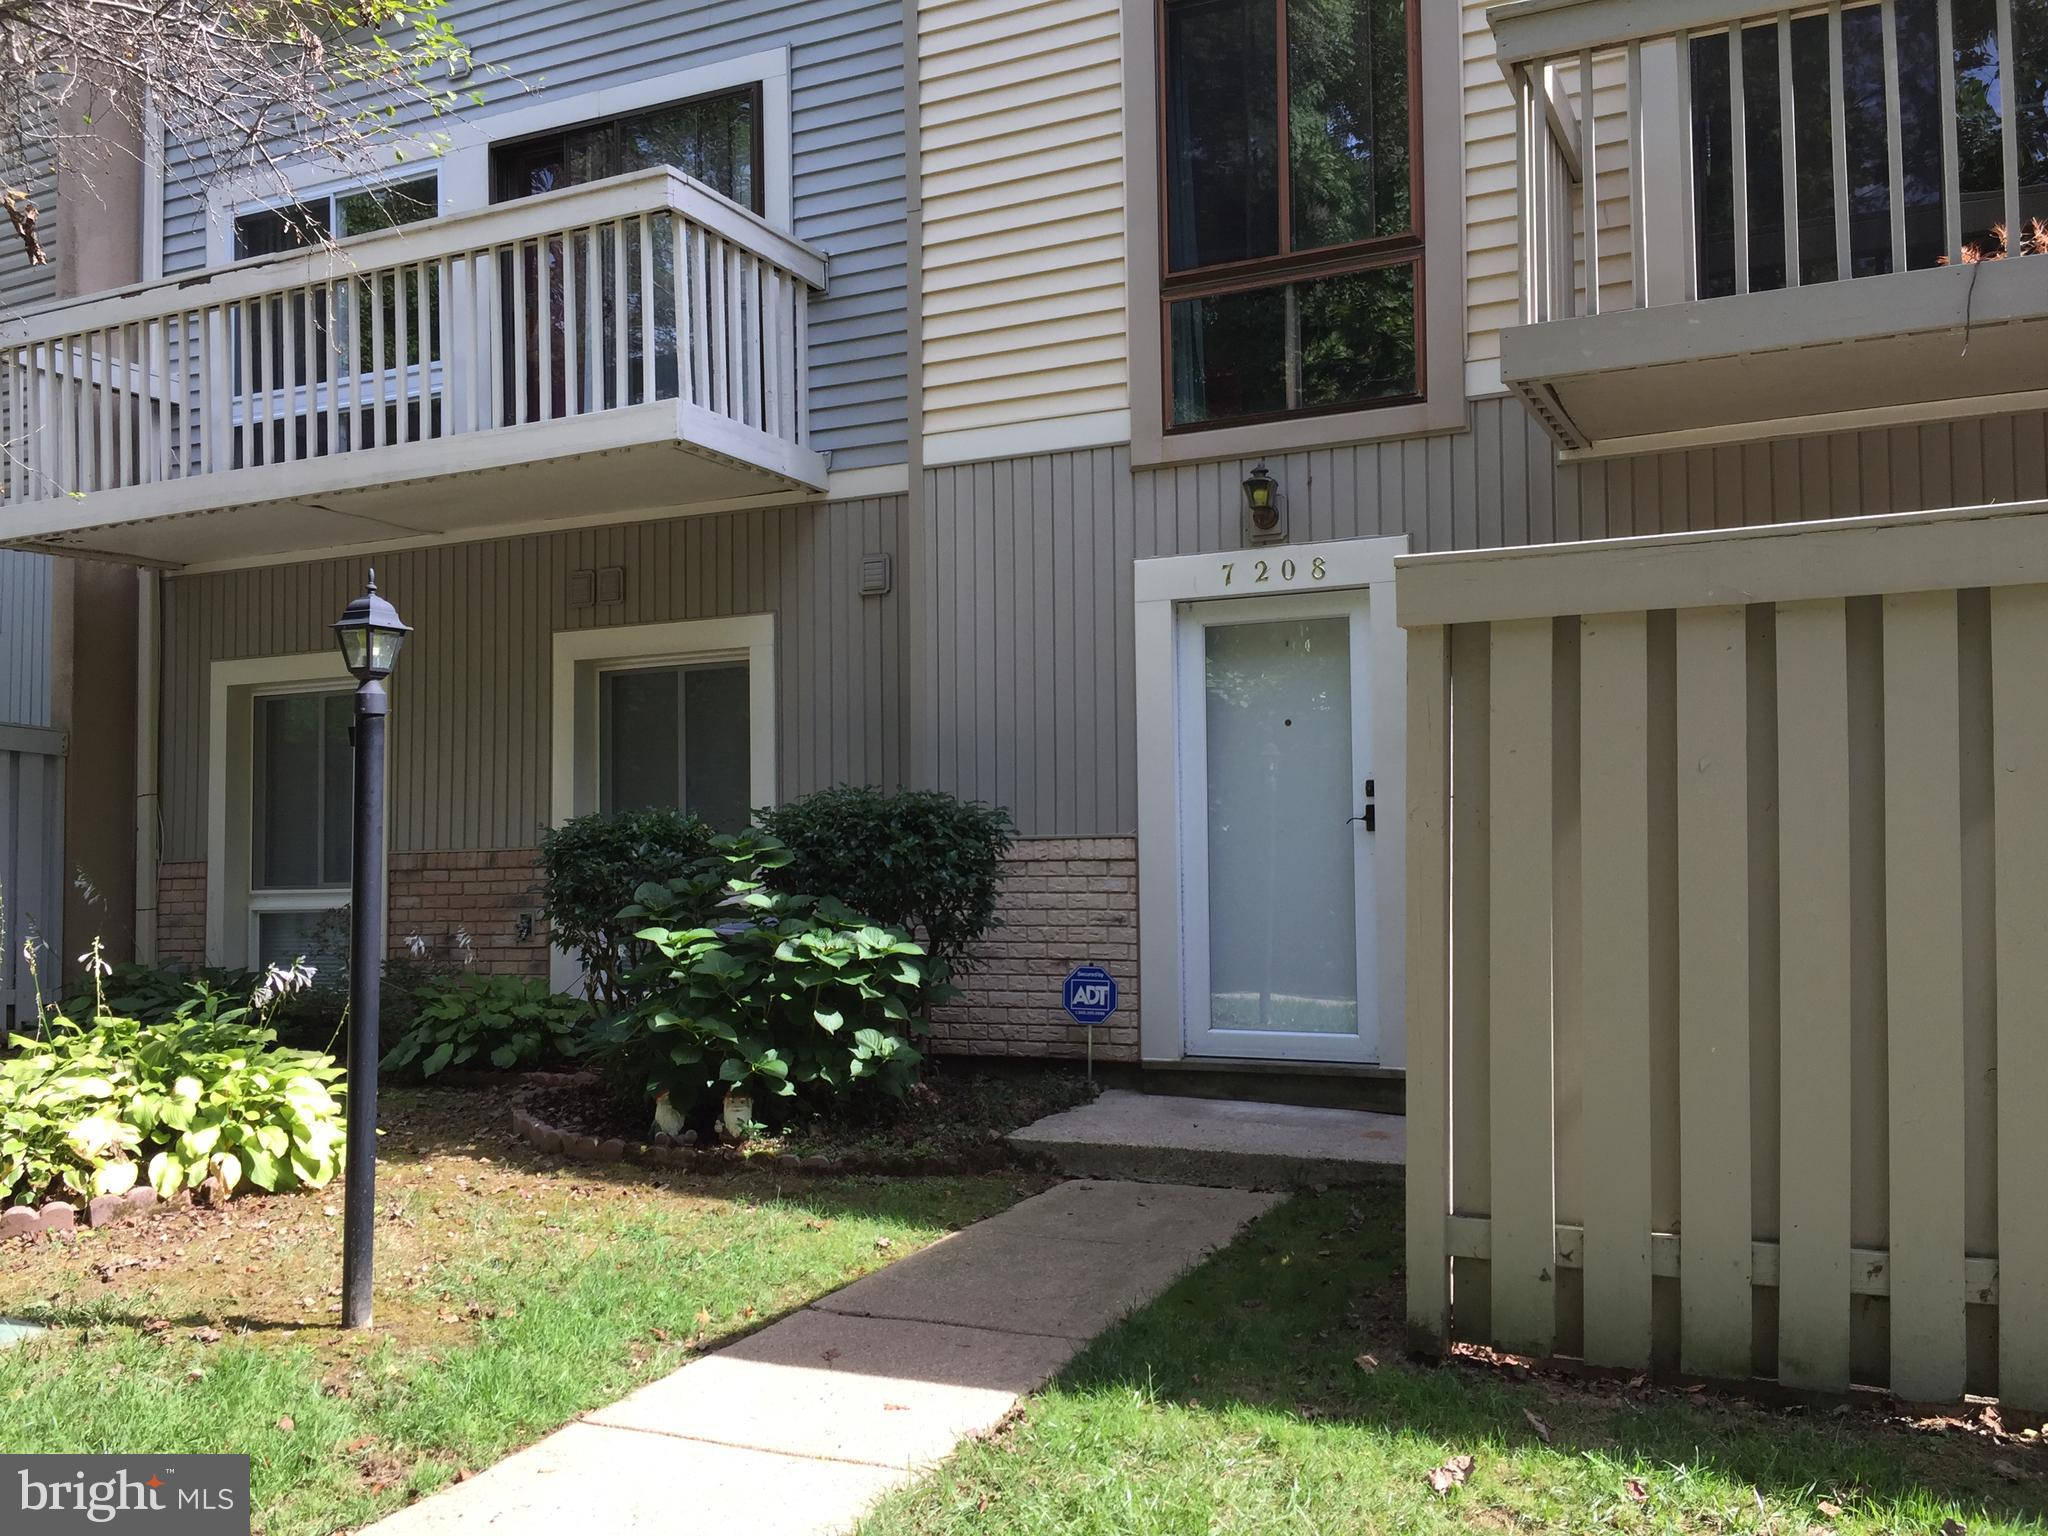 Best Valued Home In Sought After West Springfield Area.  This Two Bedroom Two Bath End Unit Features Its Own Private Entrance, Yard, And Patio, Backing To Wooded Common Area.  New Custom Designed Kitchen With Quality Cabinets And Top Of The Line Stainless Steel Appliances.  Newer Energy Efficient Windows And Carrier HVAC To Save You Money.  Spacious Open Floor Plan With Sunken Living Room And Dining Area Appointed With Quality Hardwood And Ceramic Tile Flooring.  Remodeled Master Bath With Walk In Shower.   Large Utility Room For Washer, Dryer, And Storage.  Very Convenient To Parking And Mailboxes.  This Beautiful Must See Community Offers Large Open Spaces, With Tot Lot, Basketball Court, And Community Deck.  Located Close To Major Shopping, Interstates, Metrorail And Bike Trails. A Must See.